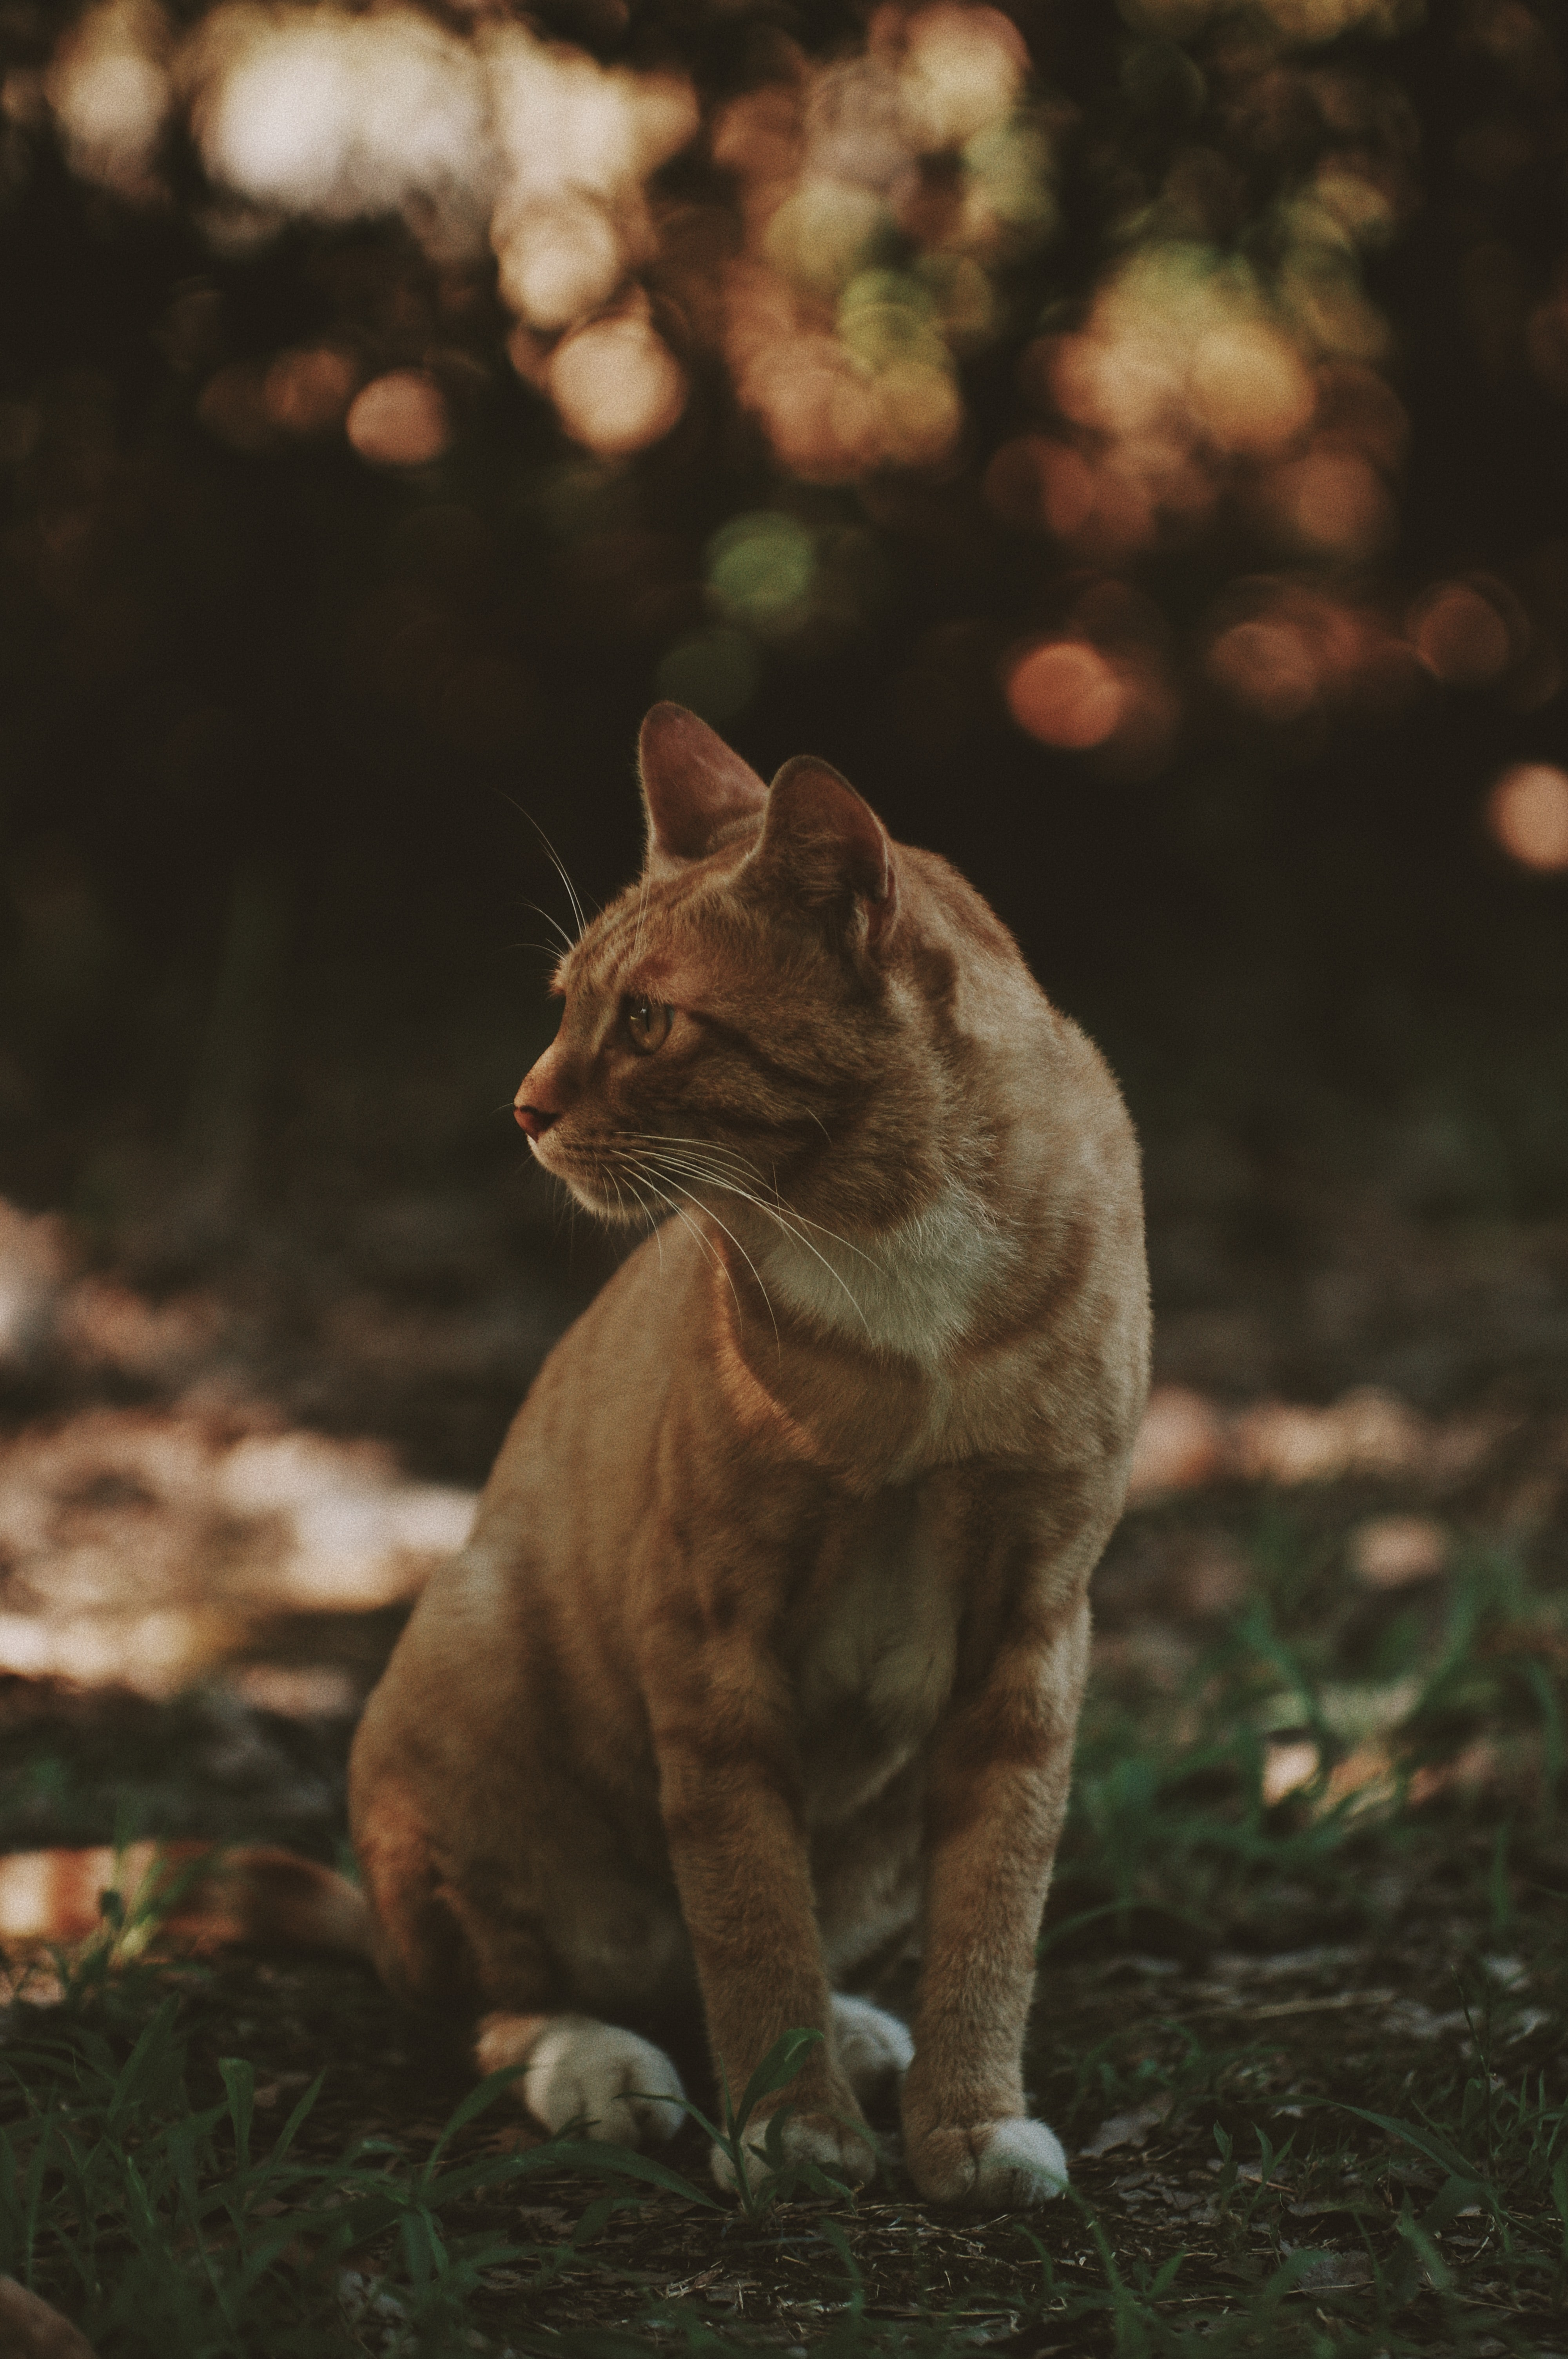 selective focus photography of orange tabby cat sitting on grass field